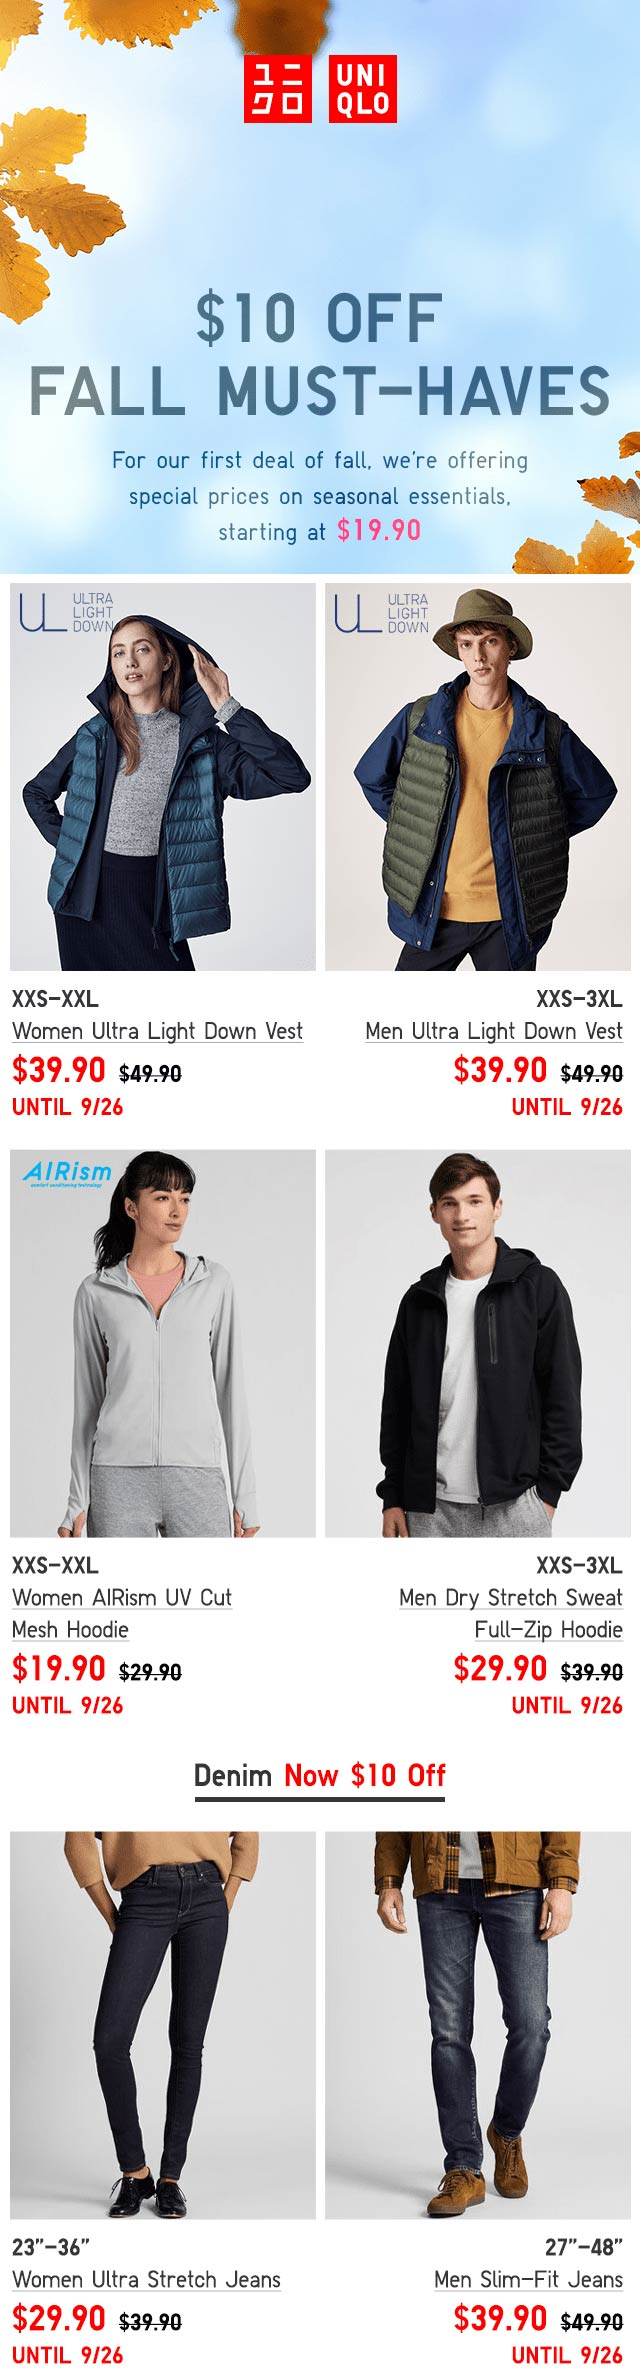 Uniqlo Coupon February 2020 $10 off fall at Uniqlo, ditto online